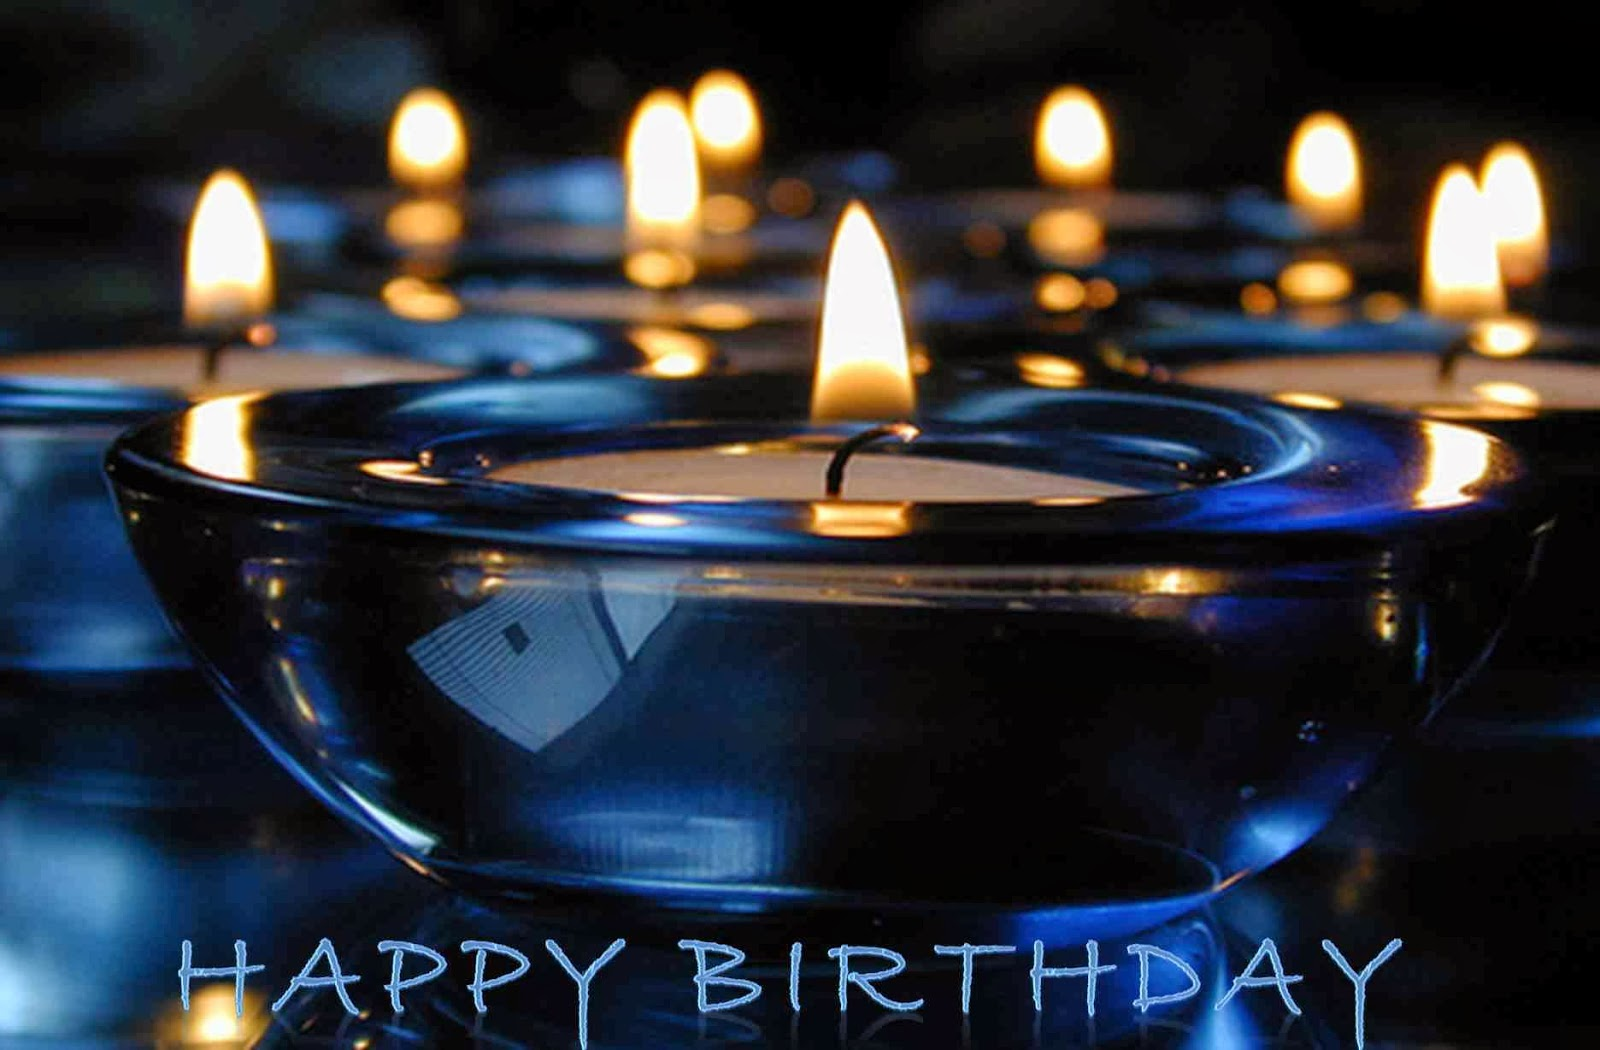 birthday wishes in hd images ; 20-Awesome-Happy-Birthday-Wishes-HD-Wallpapers-2